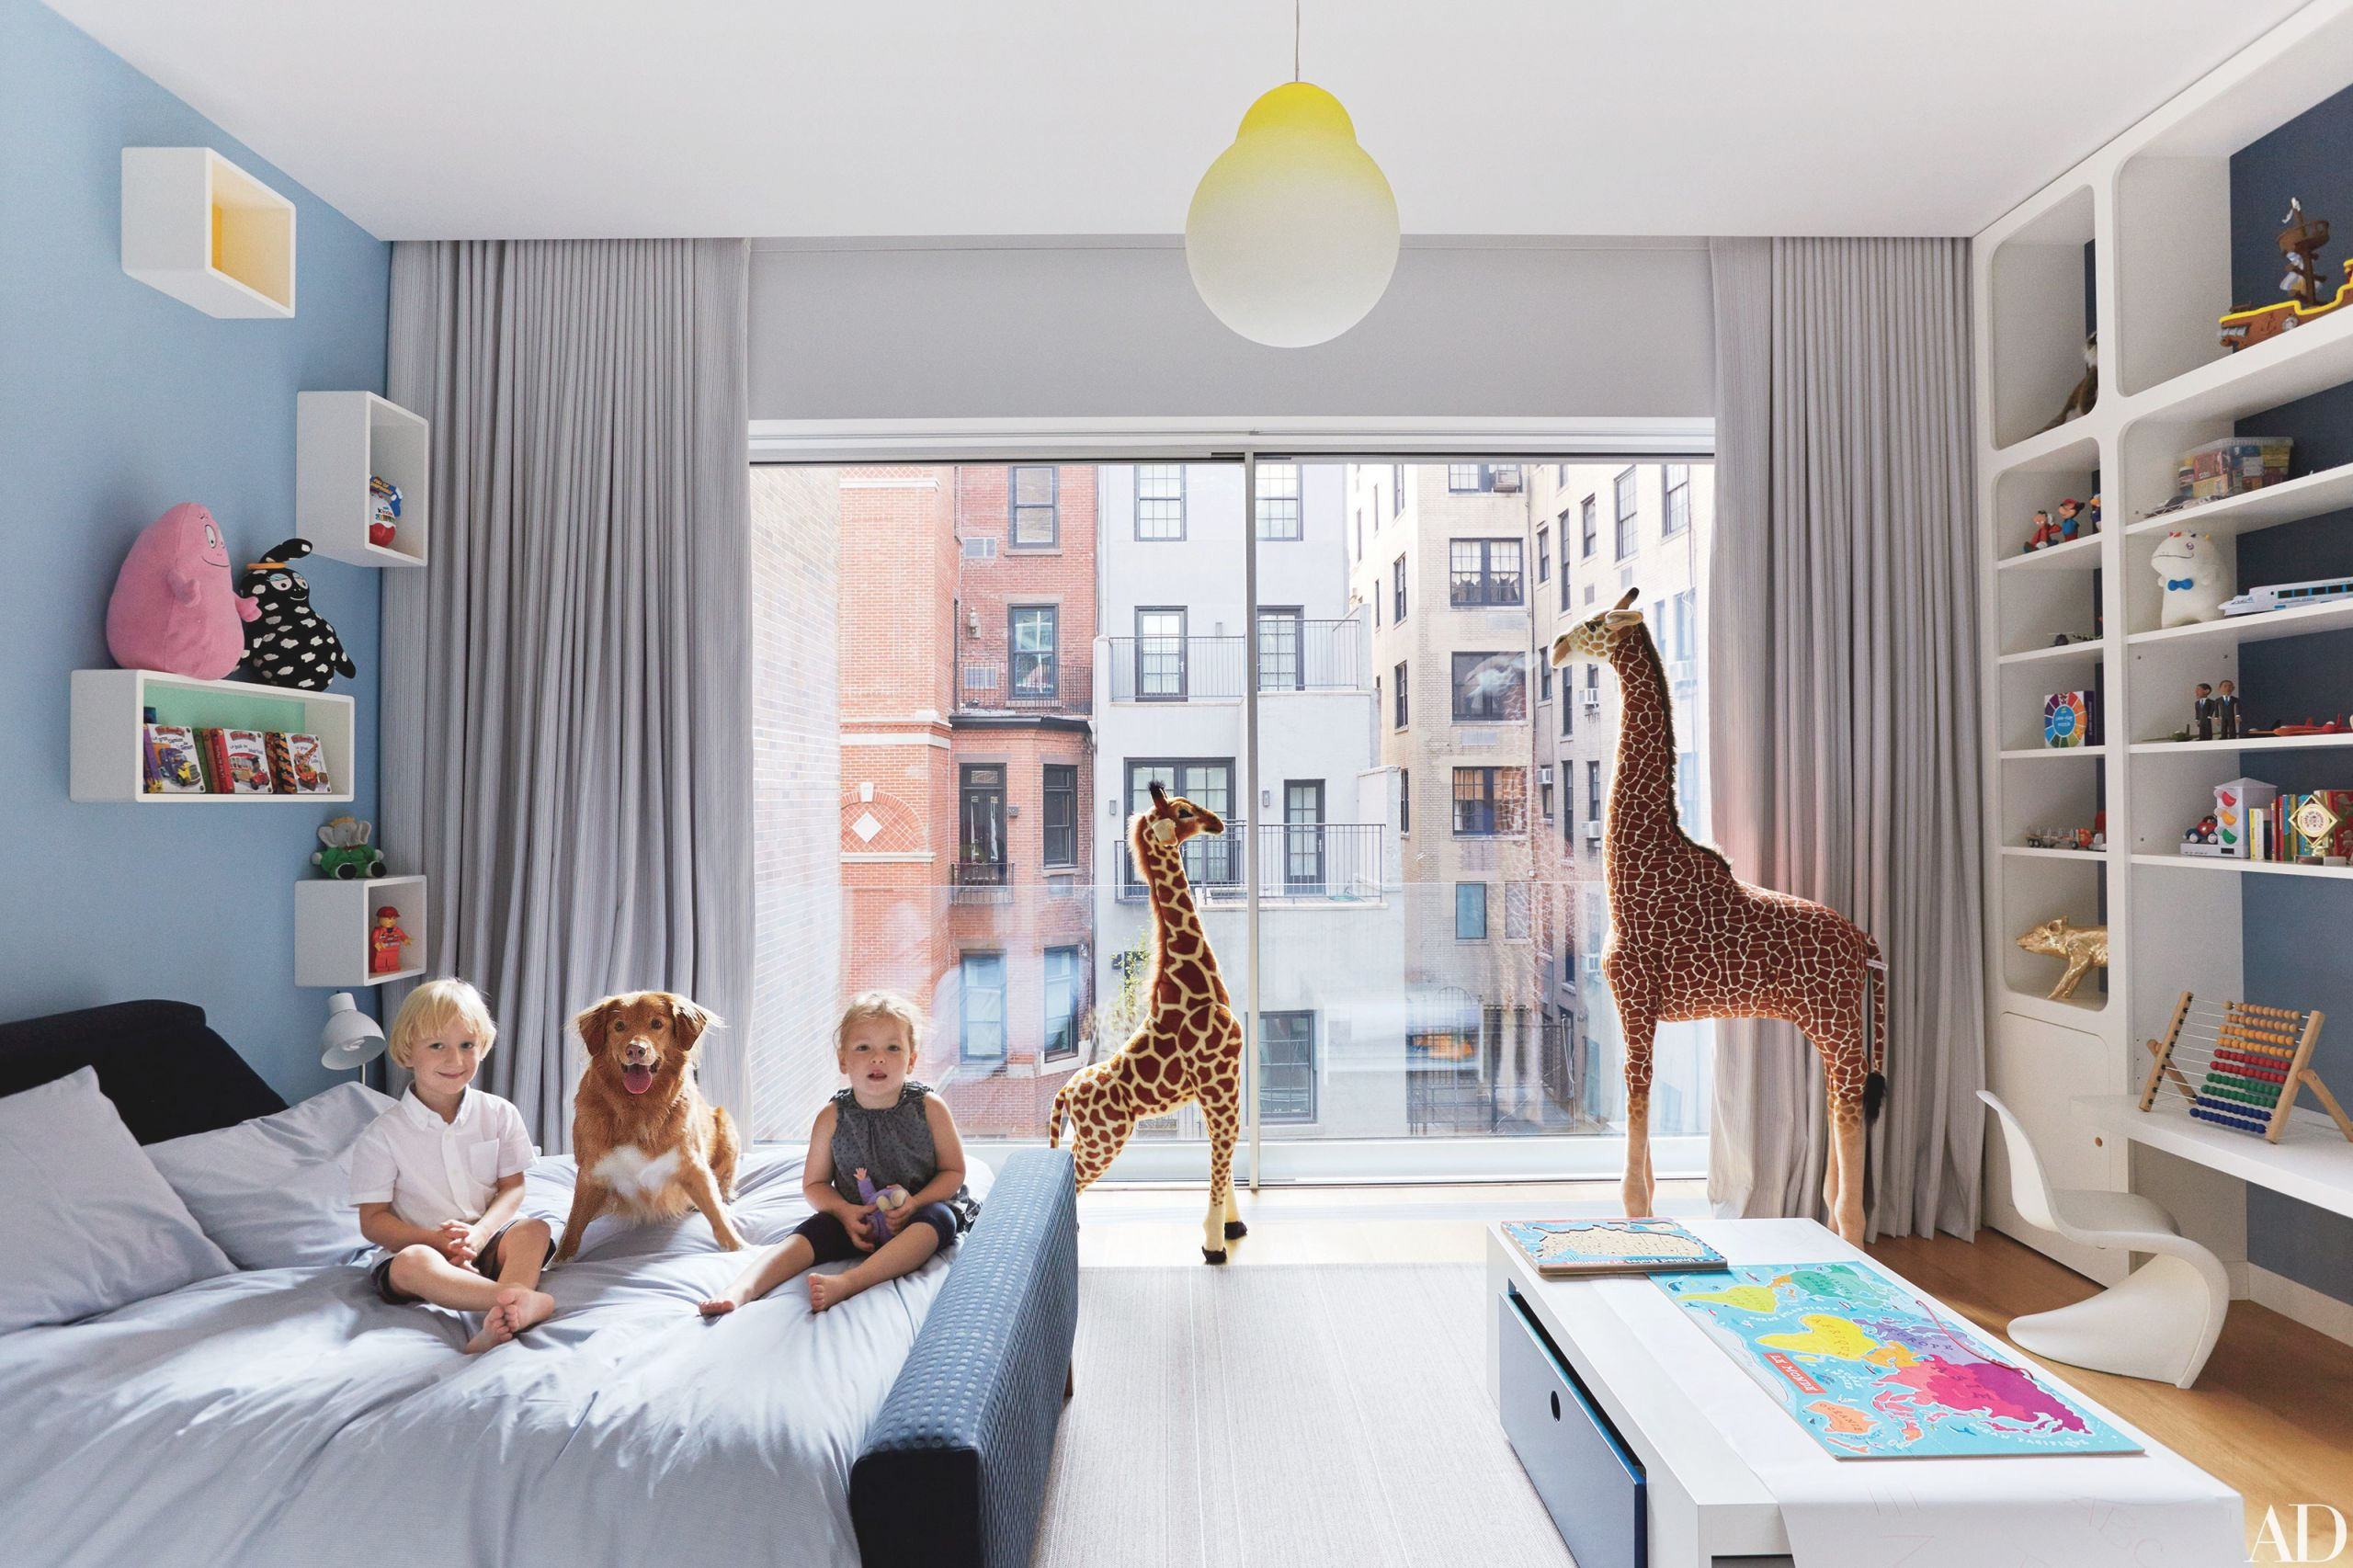 54 Stylish Kids Bedroom & Nursery Ideas | Architectural Digest within Childrens Bedroom Decor Ideas